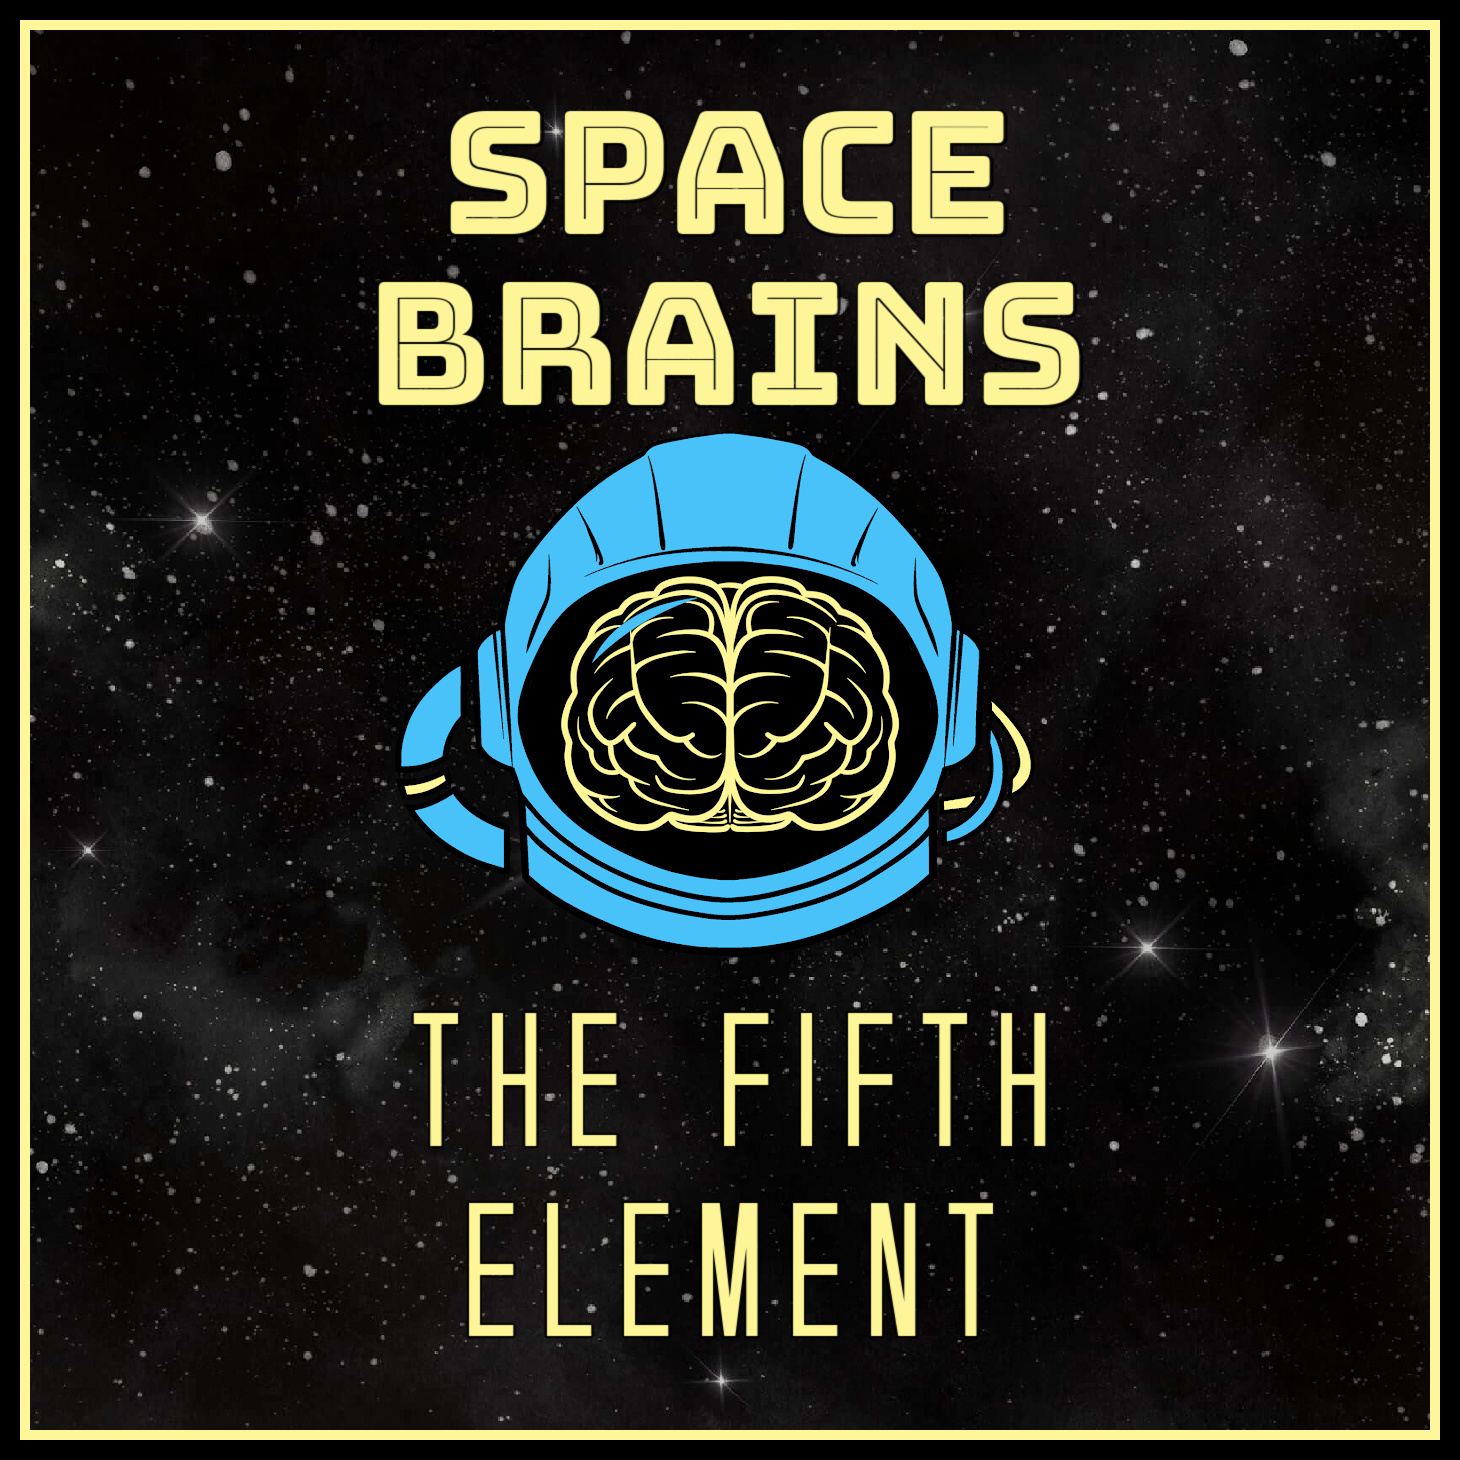 Space Brains - 45 - The Fifth Element